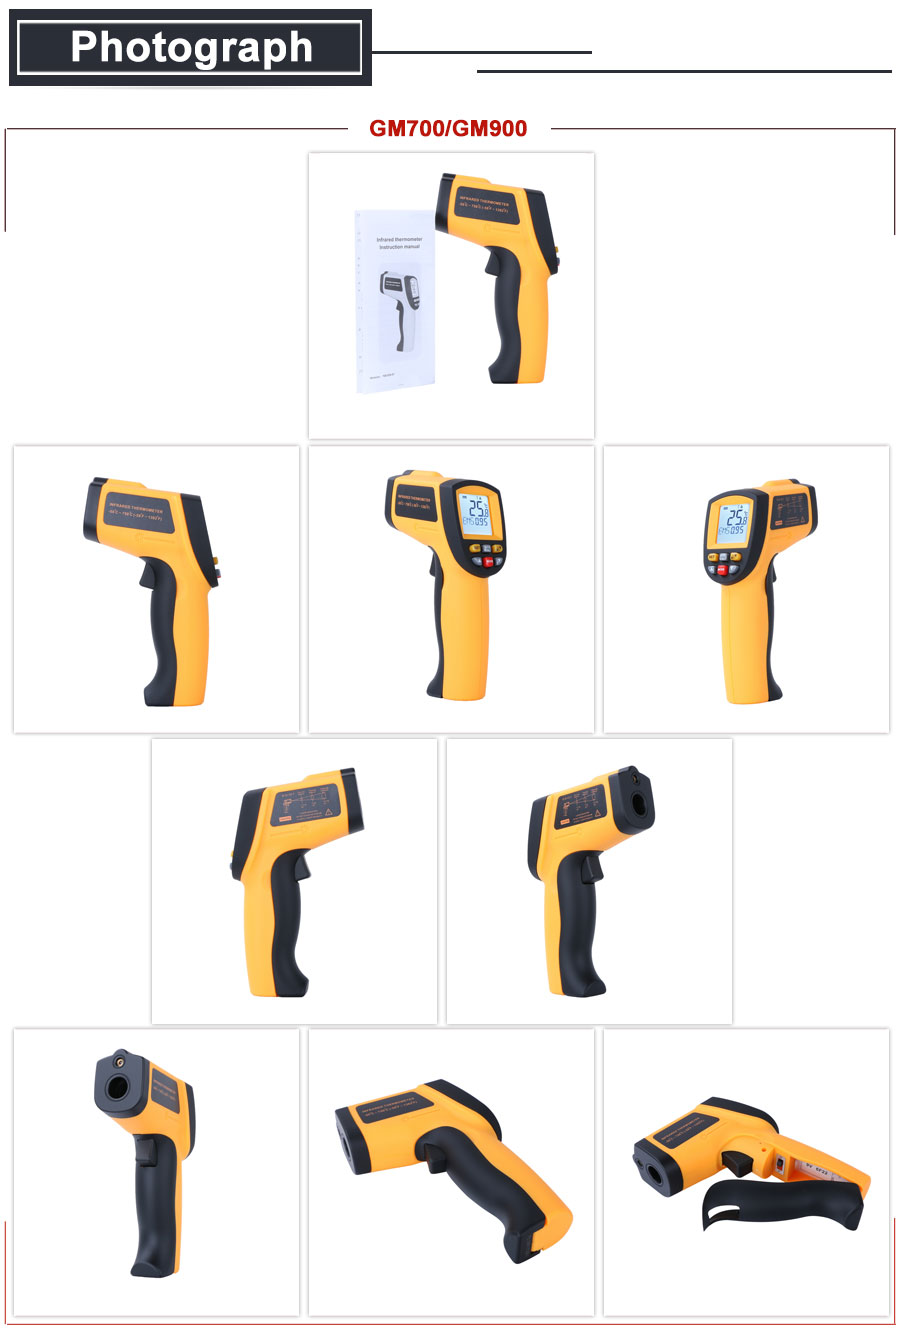 HTB1BS42XynrK1Rjy1Xcq6yeDVXa6 RZ IR Infrared Thermometer Thermal Imager Handheld Digital Electronic Outdoor Non-Contact Laser Pyrometer Point Gun Thermometer